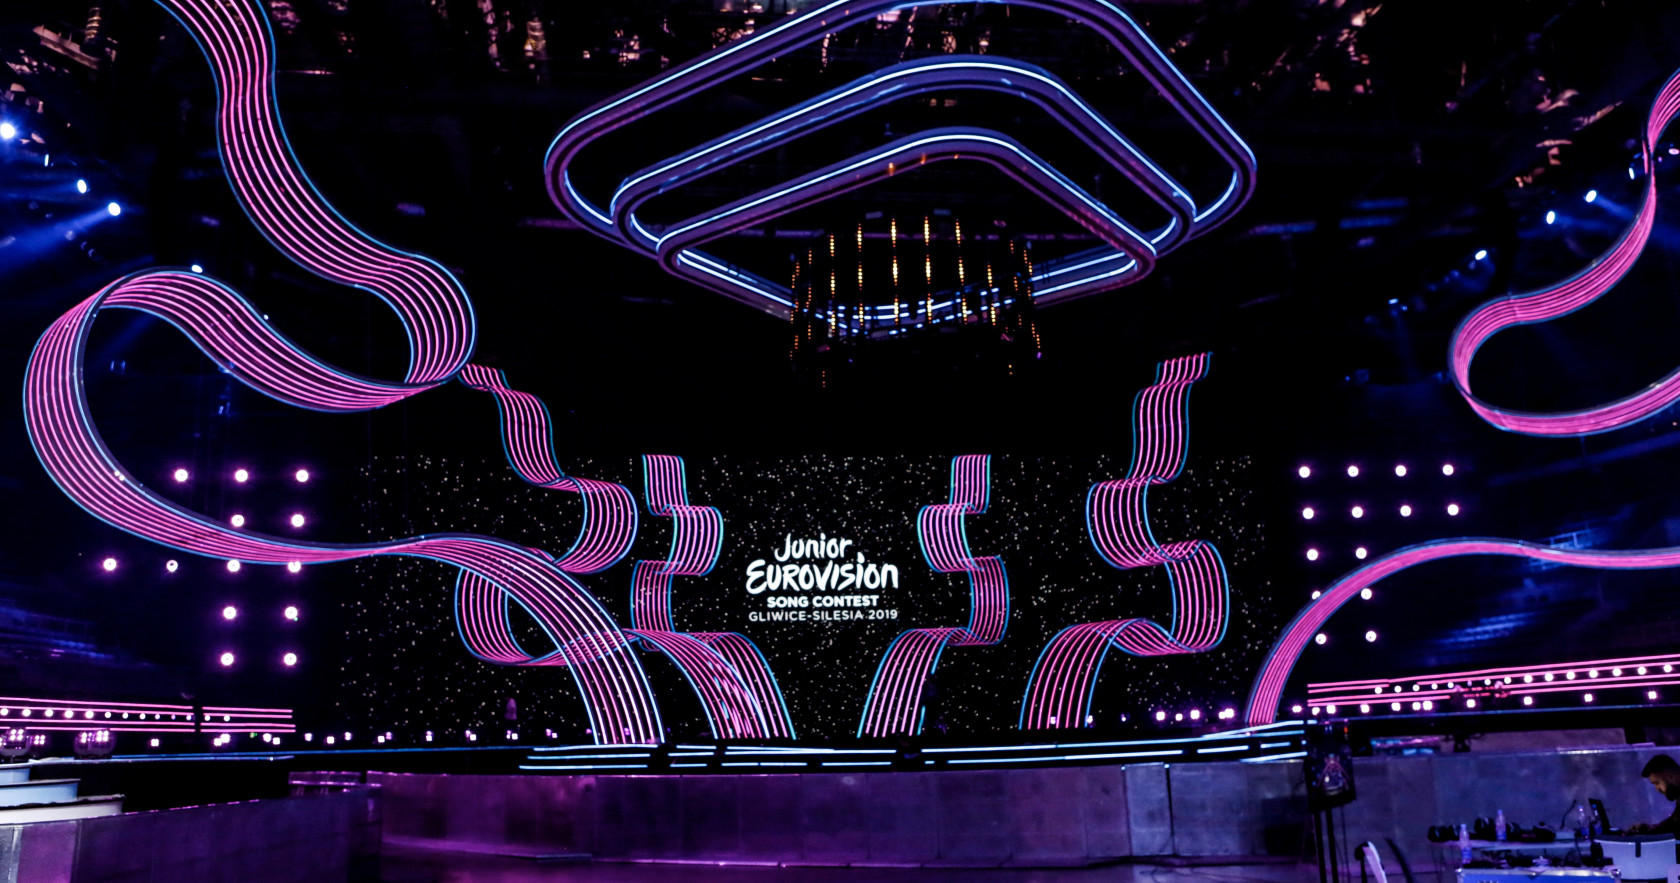 Arena Gliwice: Junior Eurovision 2019 rehearsals kick off with the first set of countries